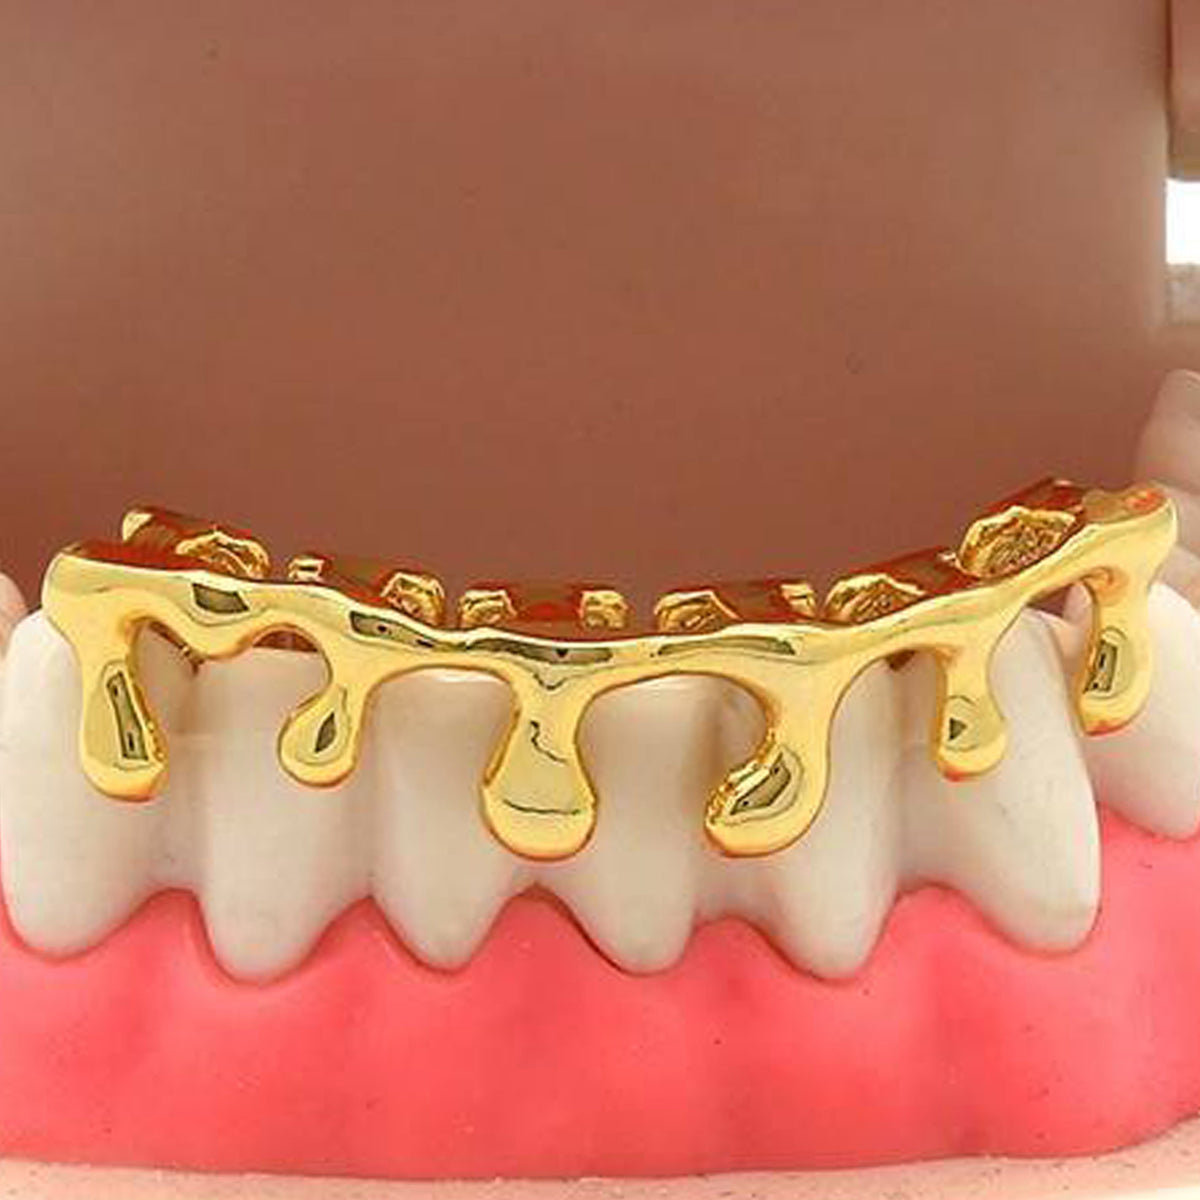 GOLD BOTTOM GRILLZ DRIP